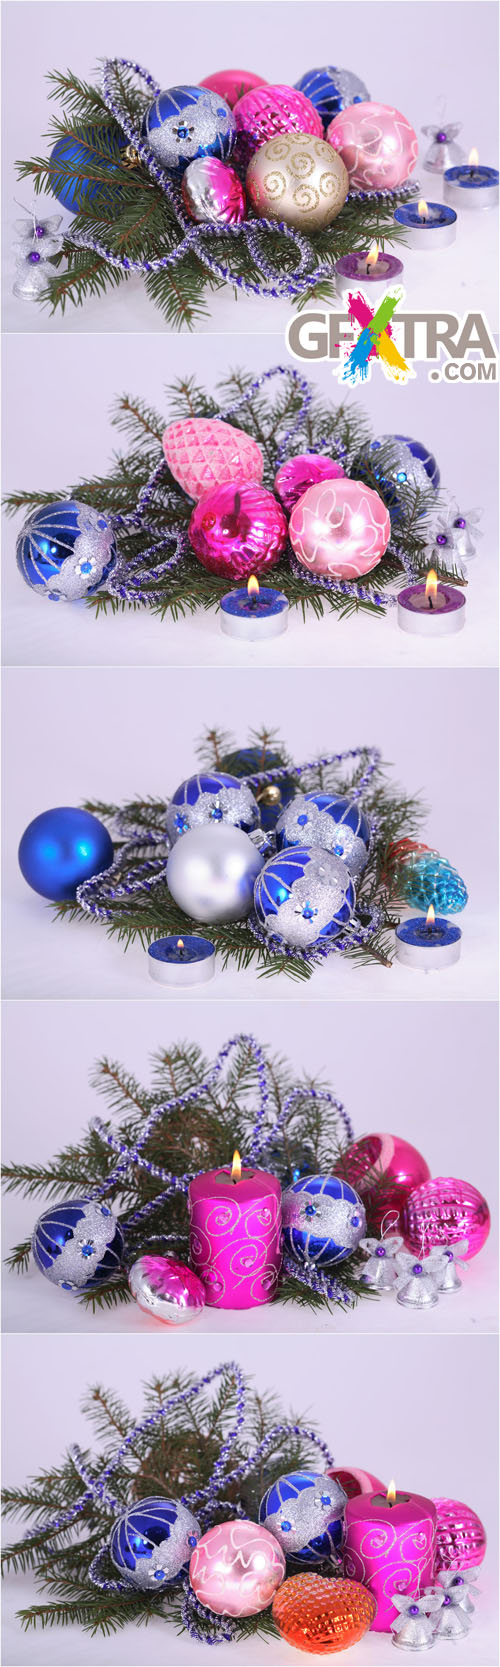 Christmas Ornaments 2 - Photo Cliparts - Balloons, Christmas Tree Branches, Candles